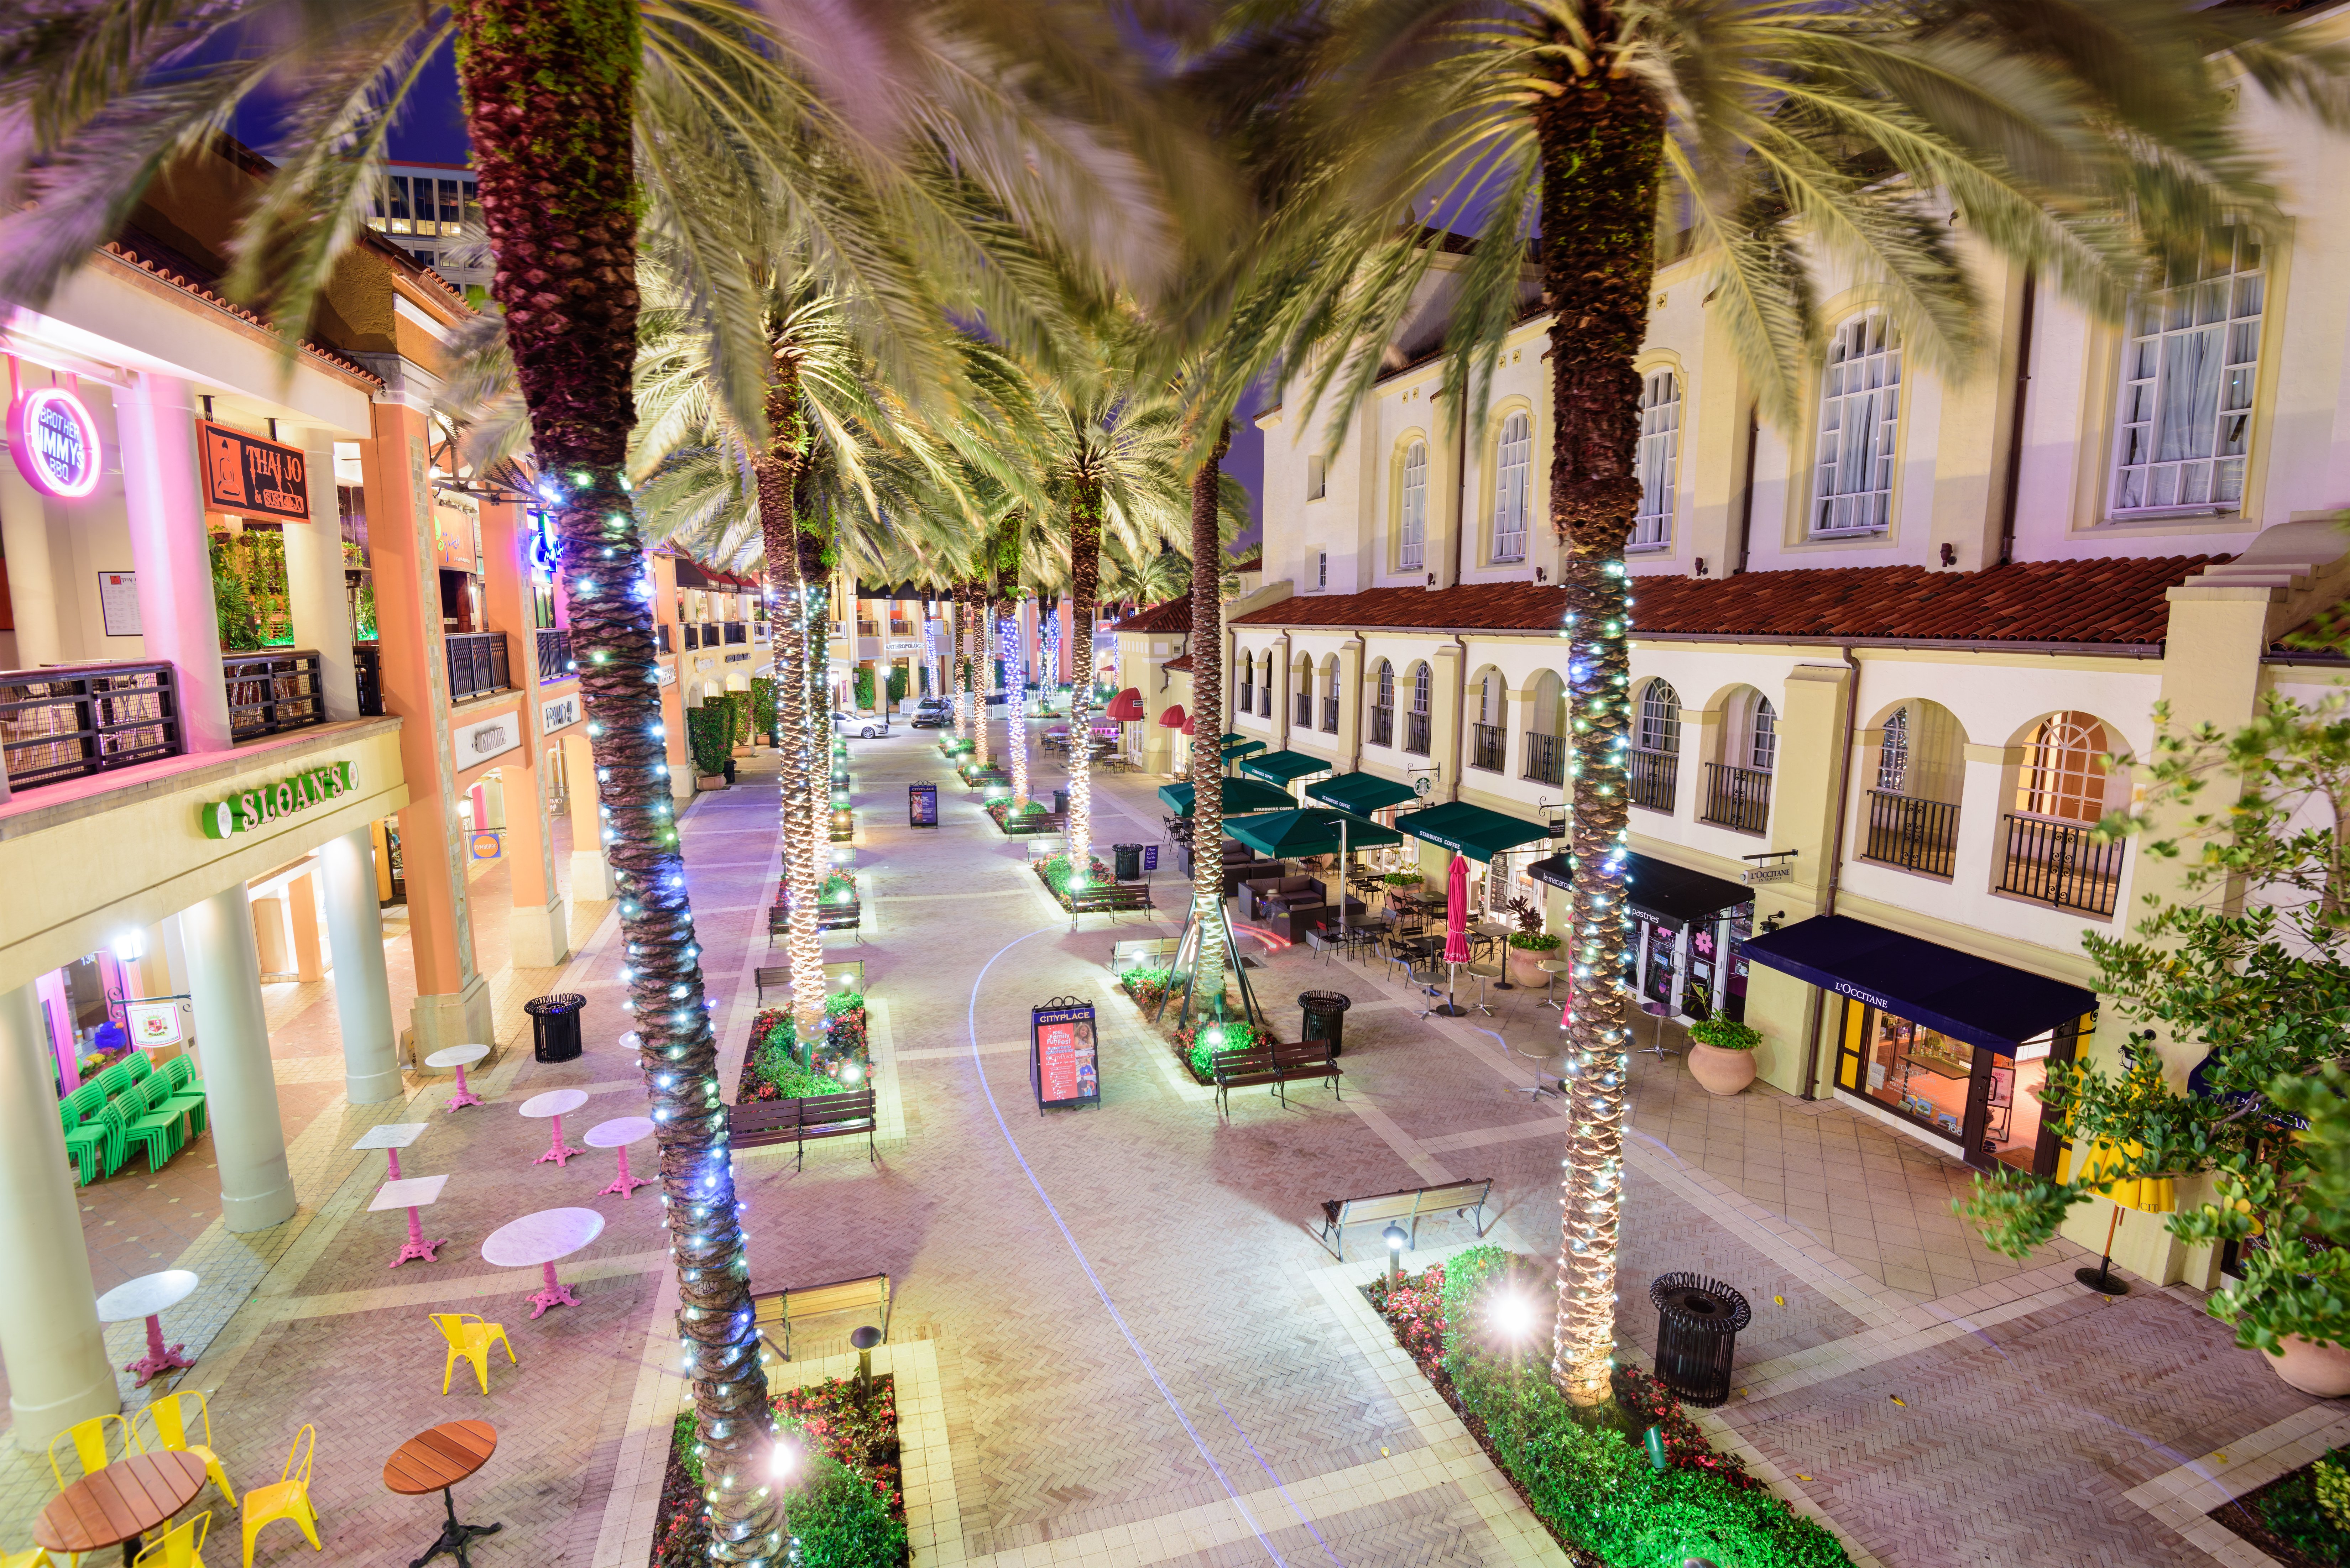 15 Things To Do With Kids In Palm Beach